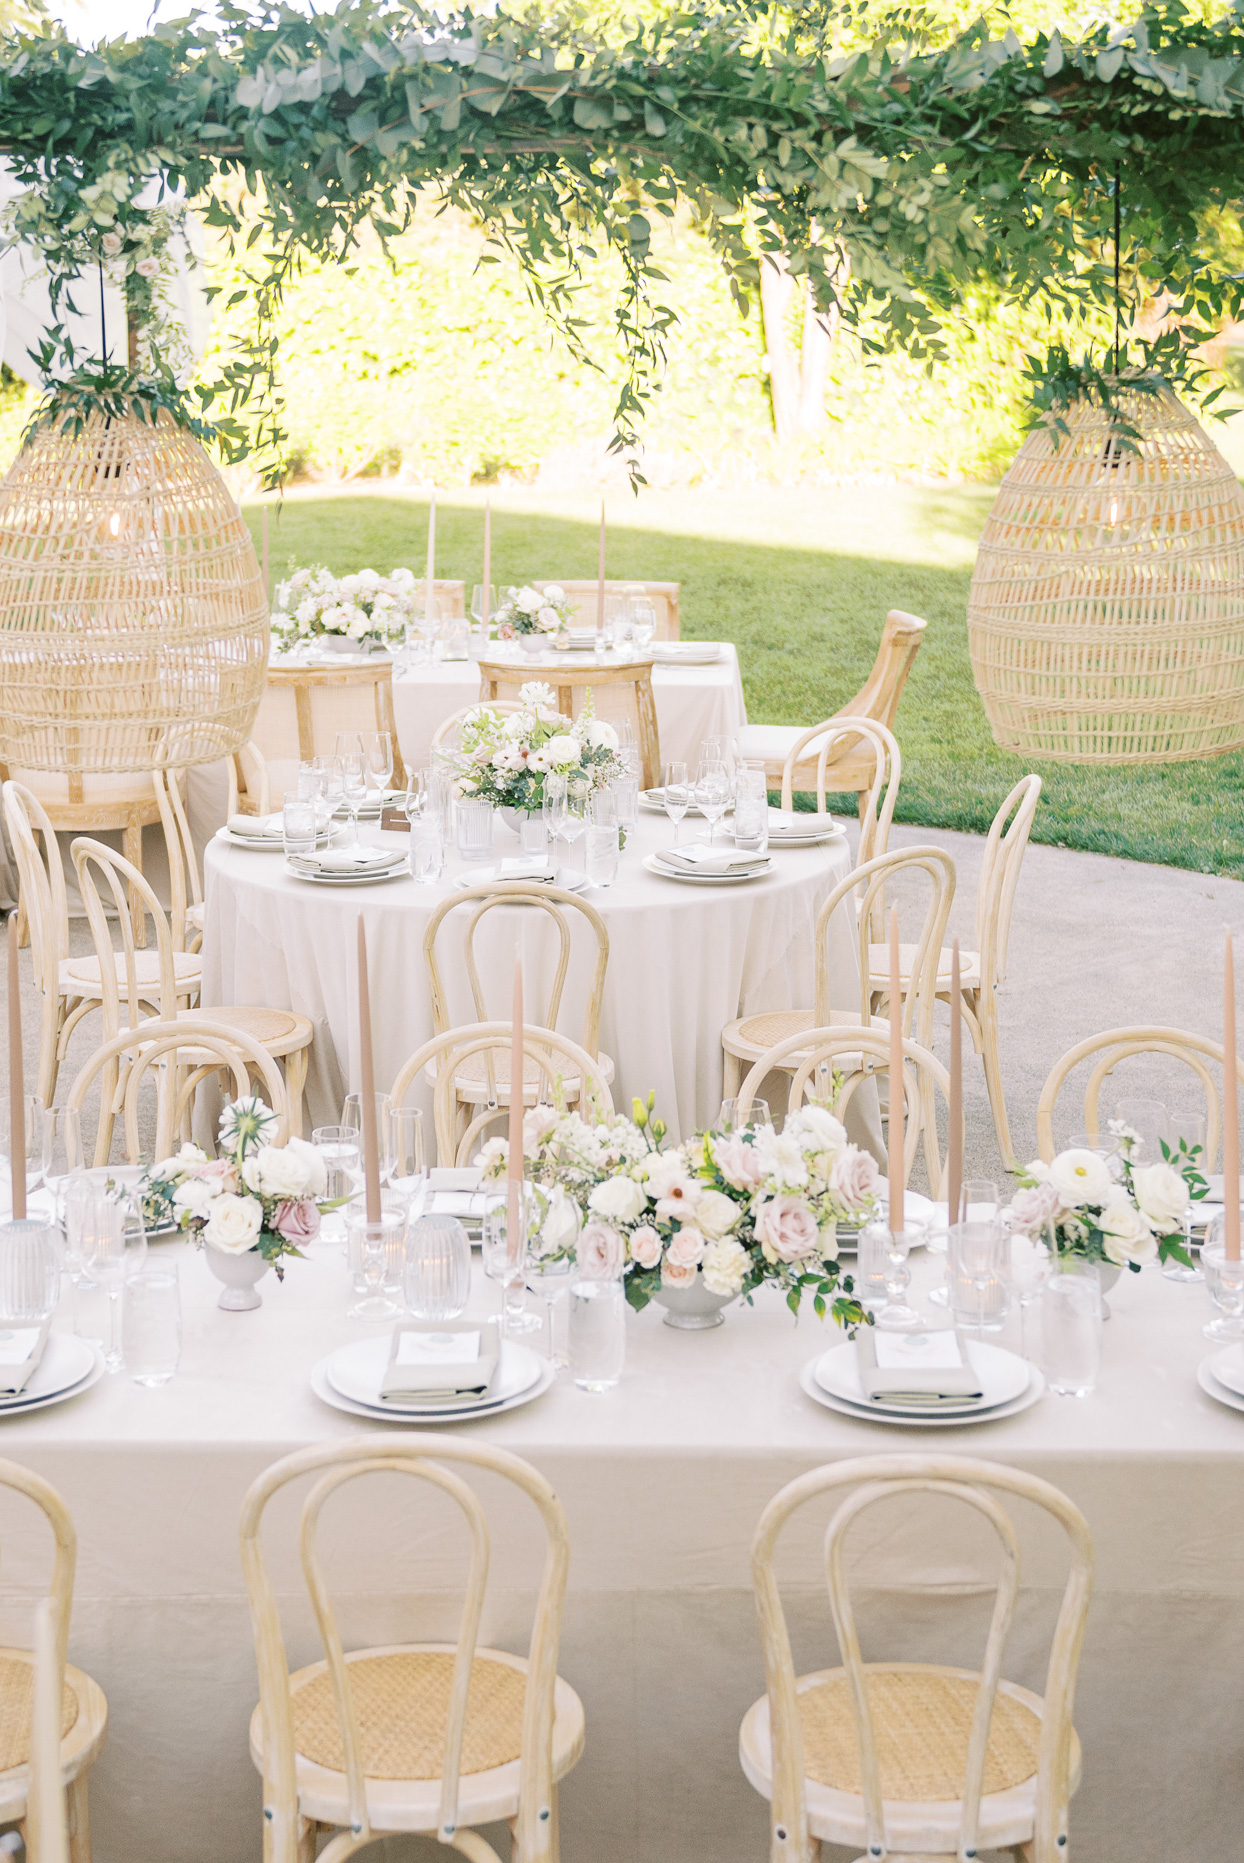 reception tables with floral accents and rattan chairs